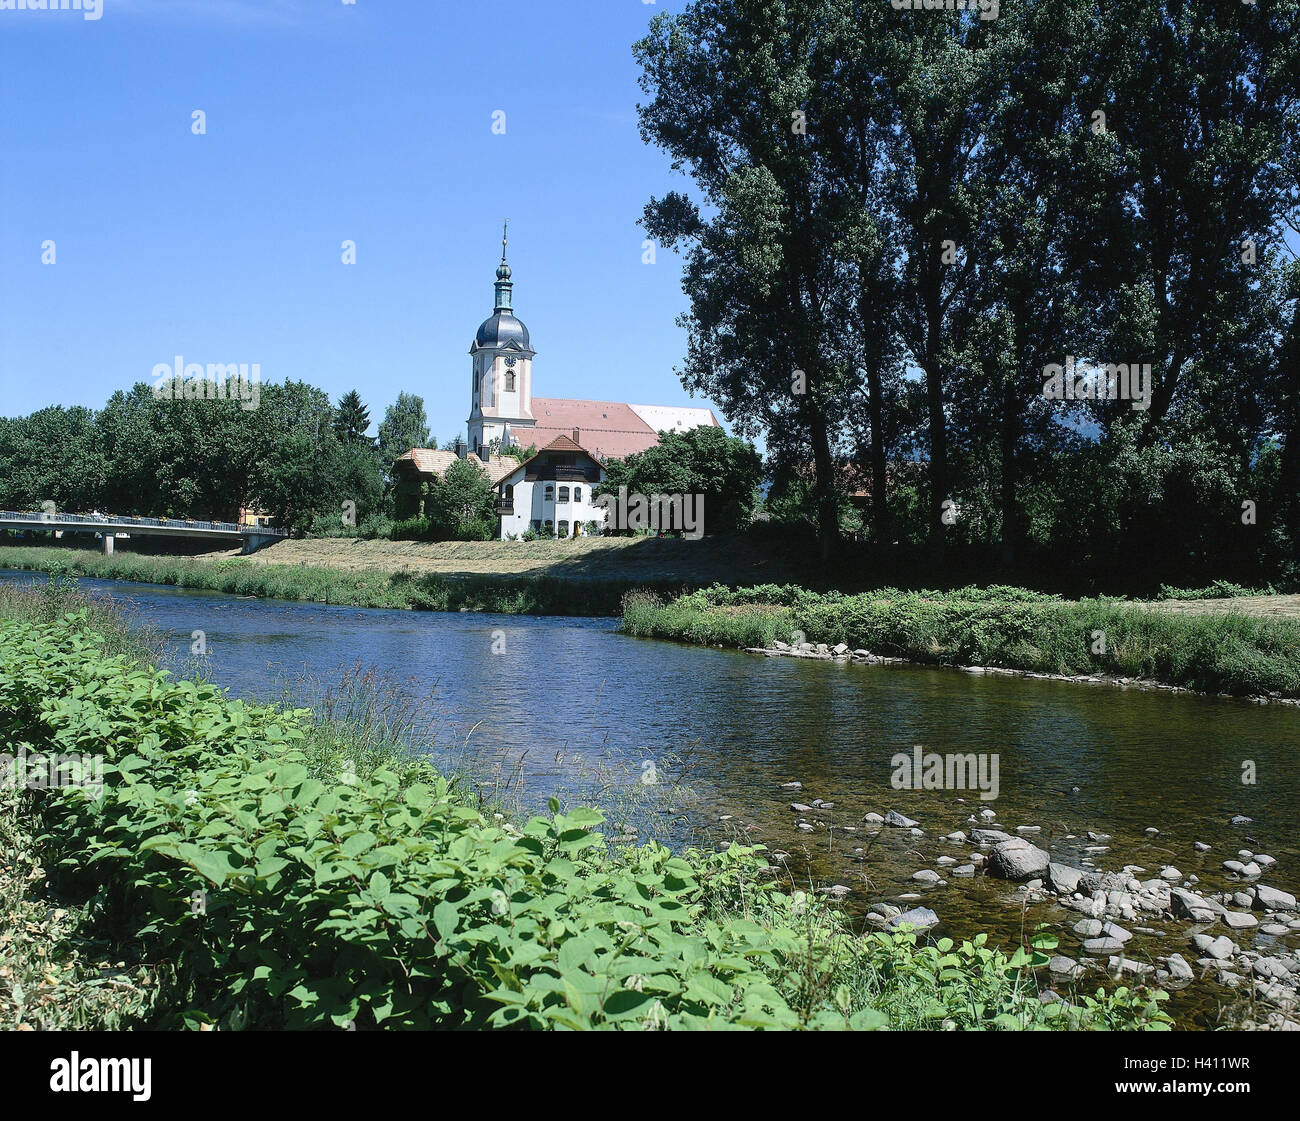 Germany, Baden-Wurttemberg, Gag-exactly, bath Red's bile, church, river, Europe, Black Forest, gag exact bath - Stock Image